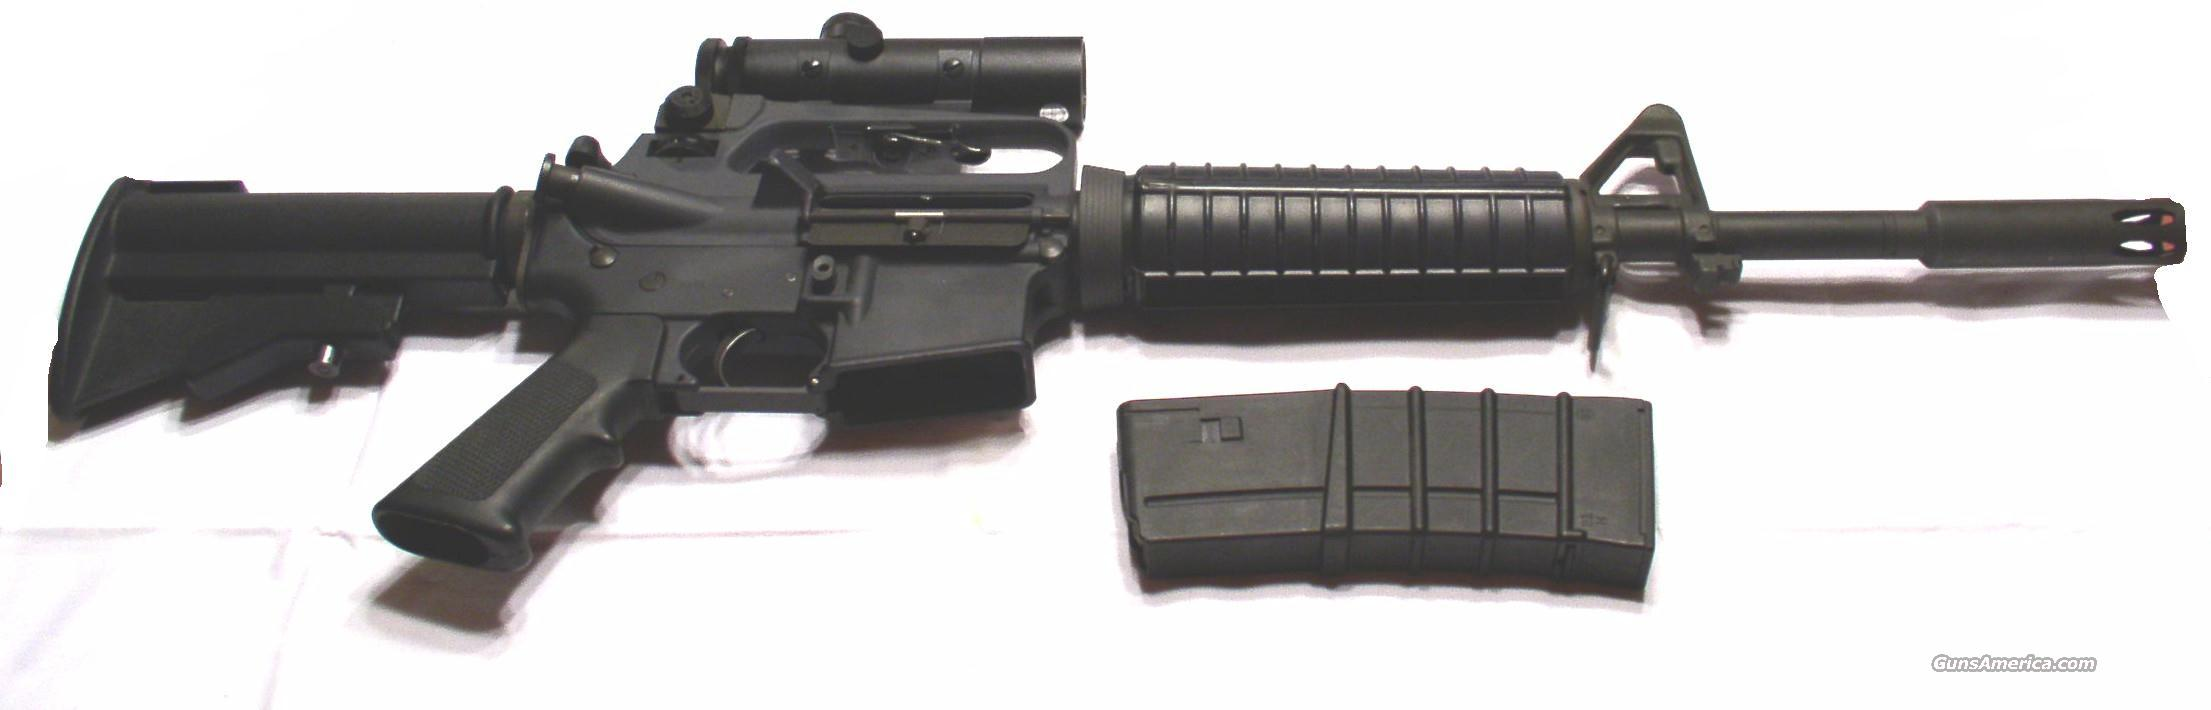 Eagle Arms M4C Carbine  Guns > Rifles > AR-15 Rifles - Small Manufacturers > Complete Rifle